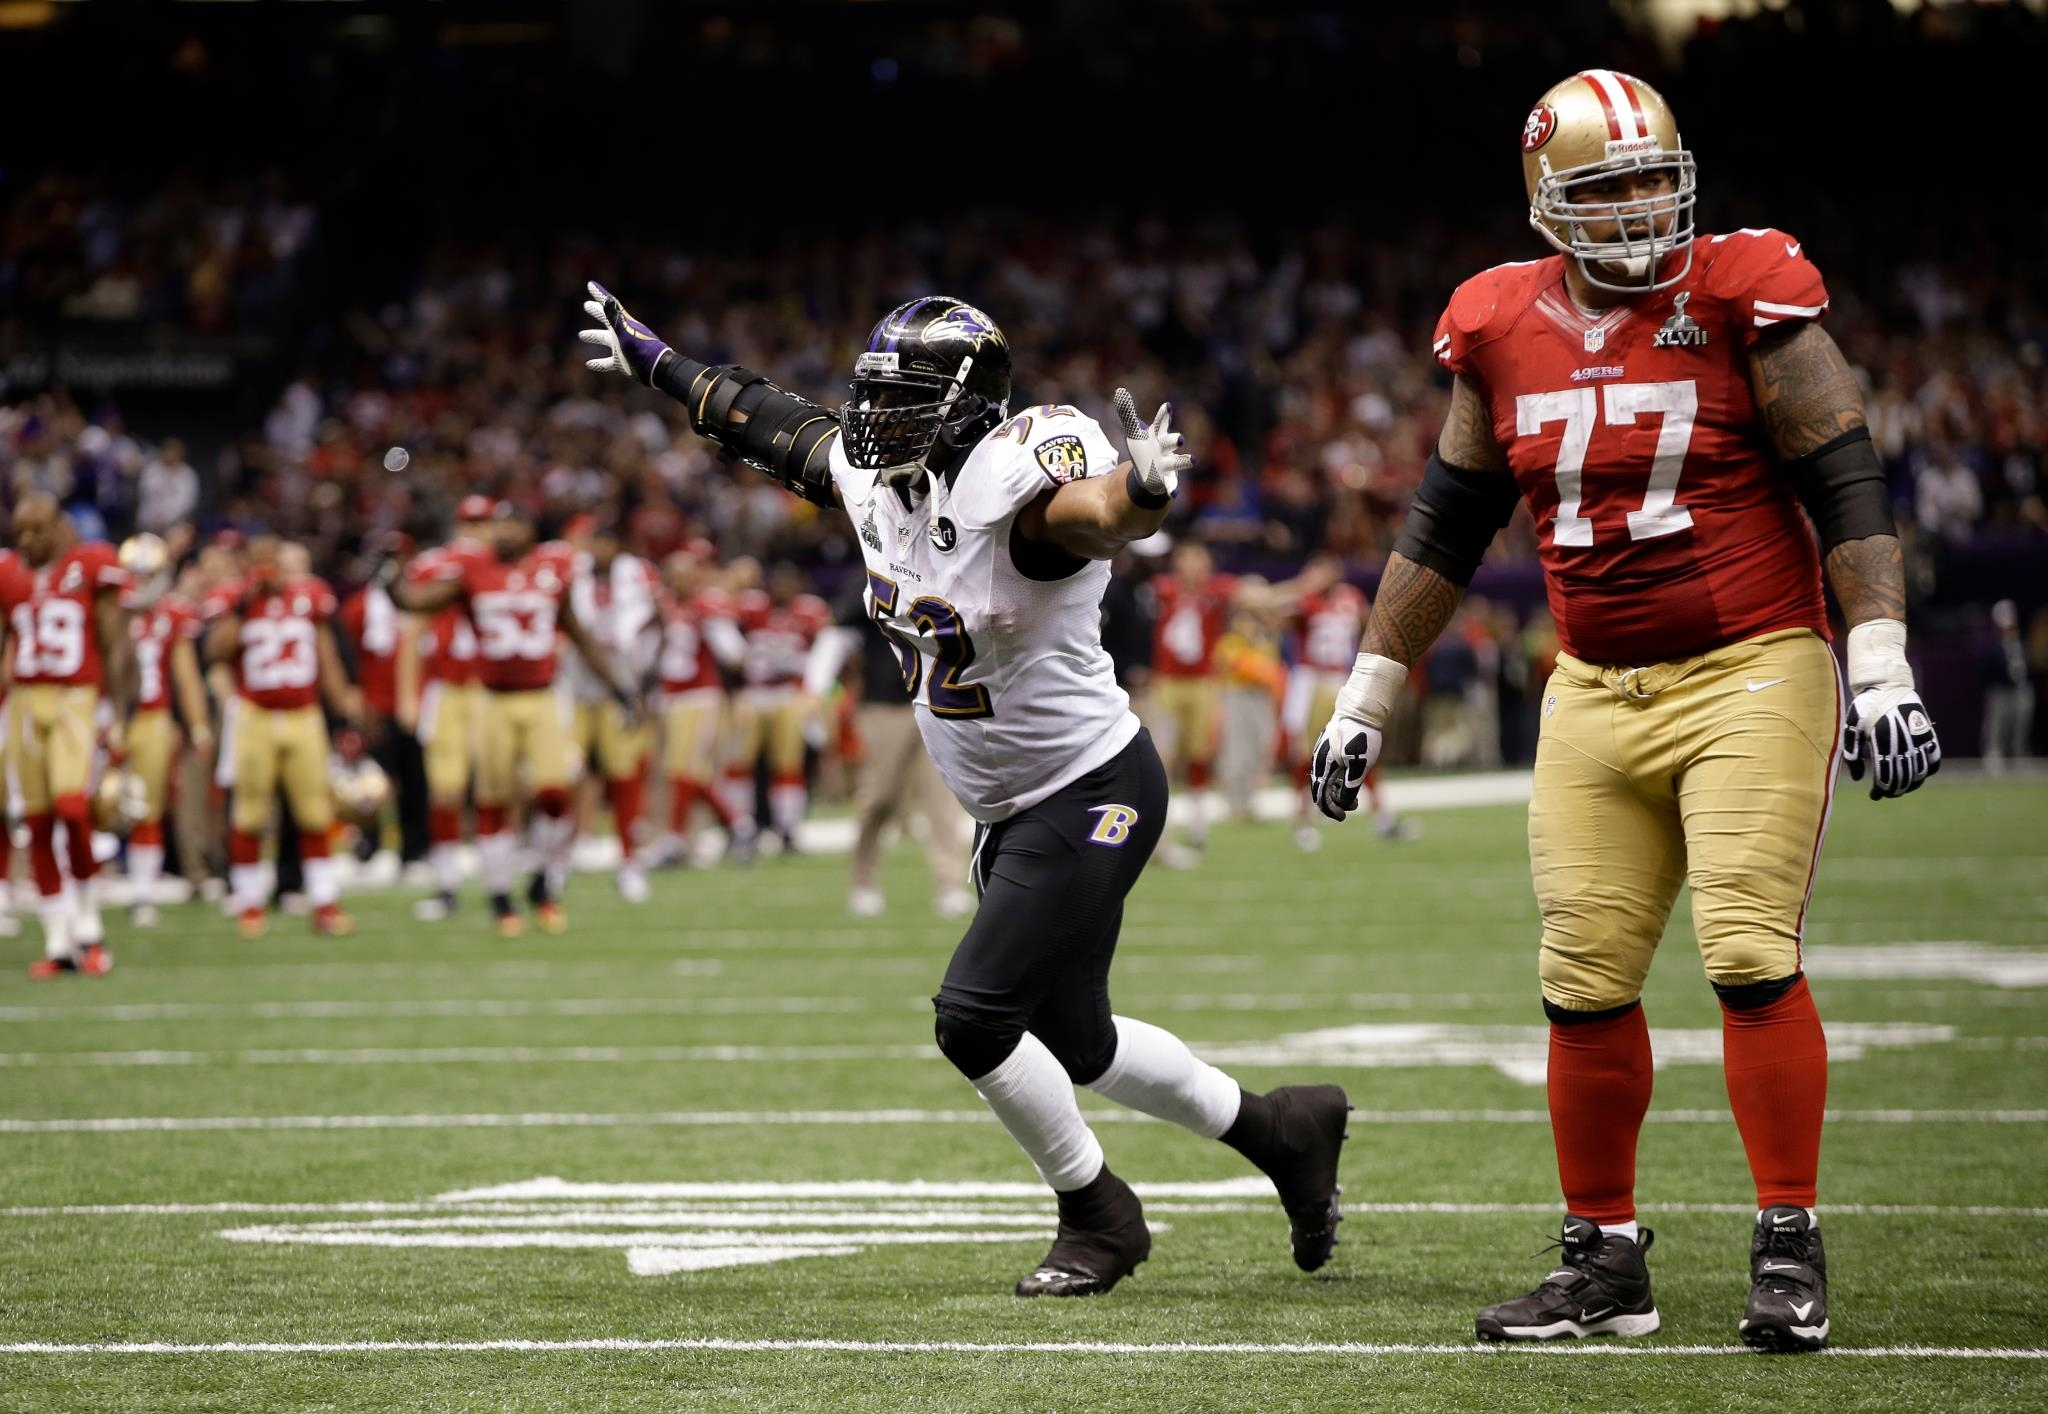 The last play of Ray Lewis career. A 4th down incompletion in Super Bowl XLVII.